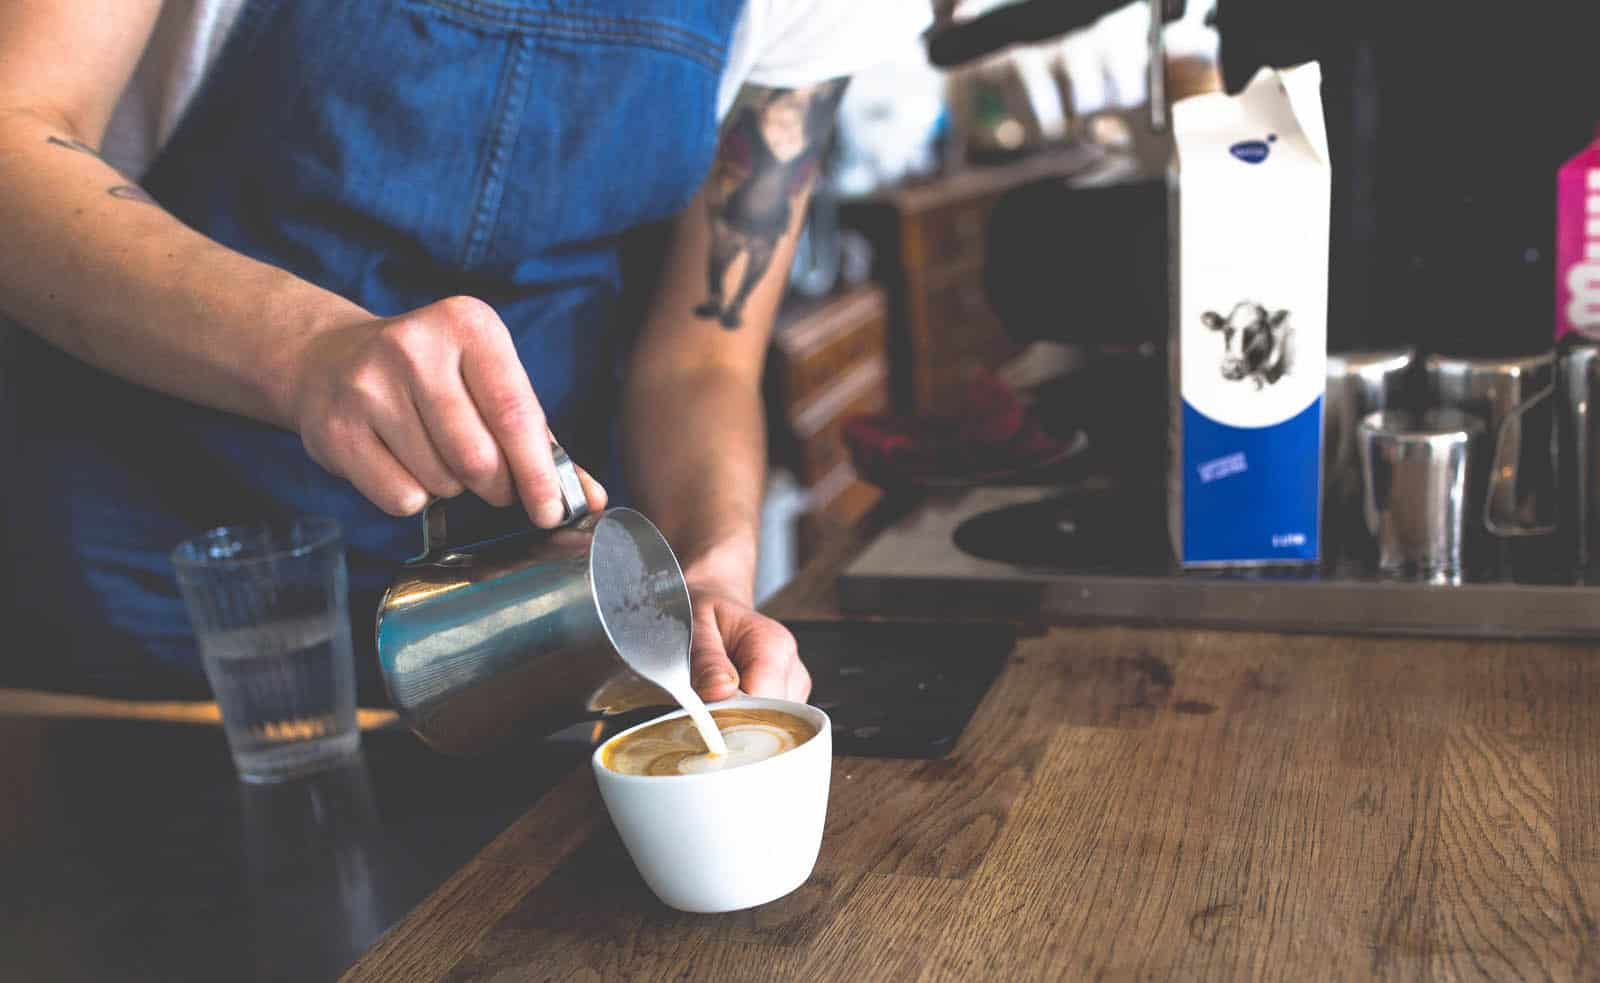 Coffee is life in Australia. Being a barista is one of the most popular jobs in Australia for foreigners.